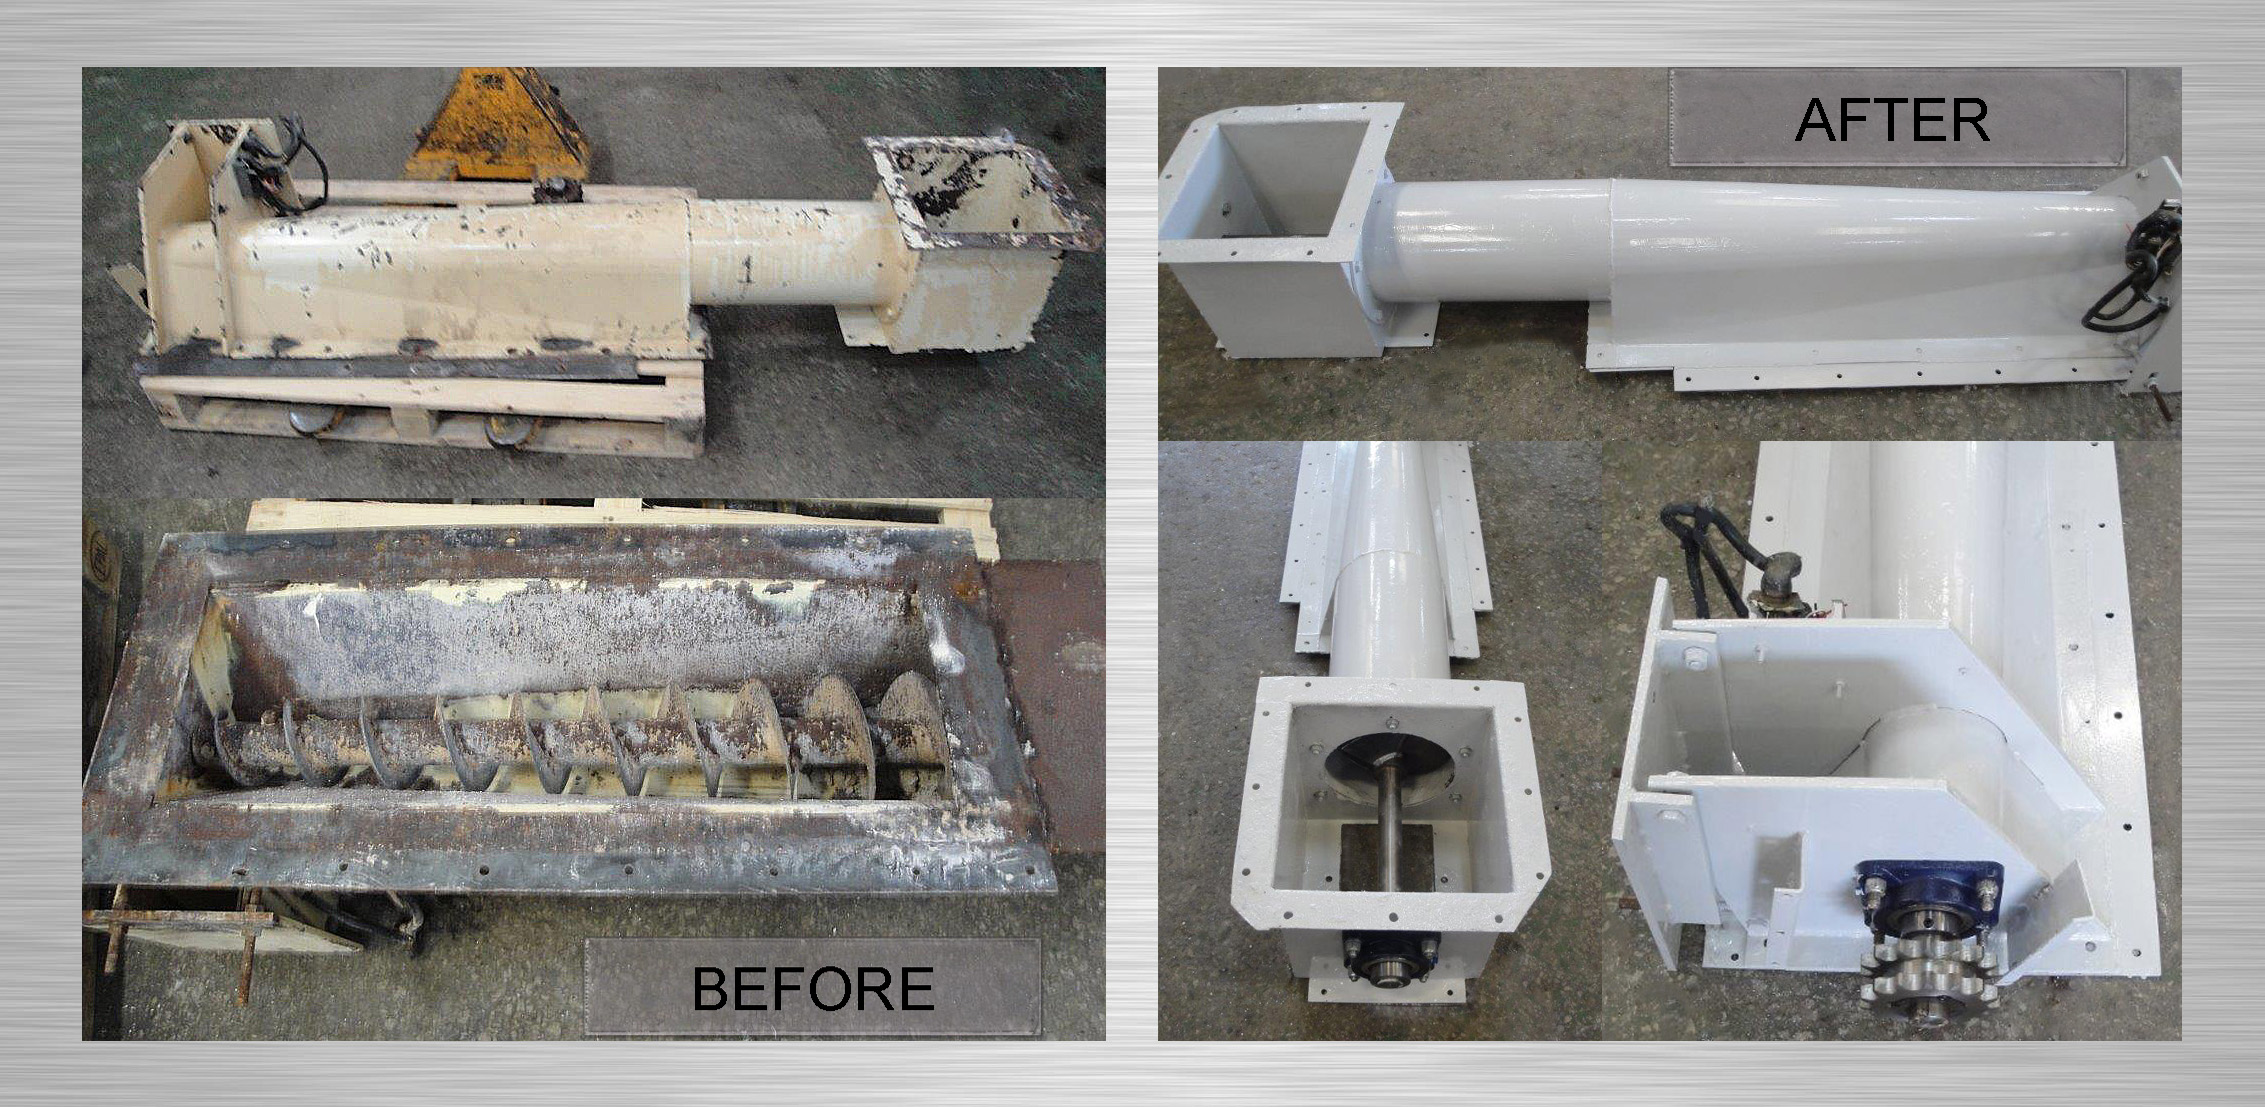 Repaired_Conveyor_Before__After.jpg